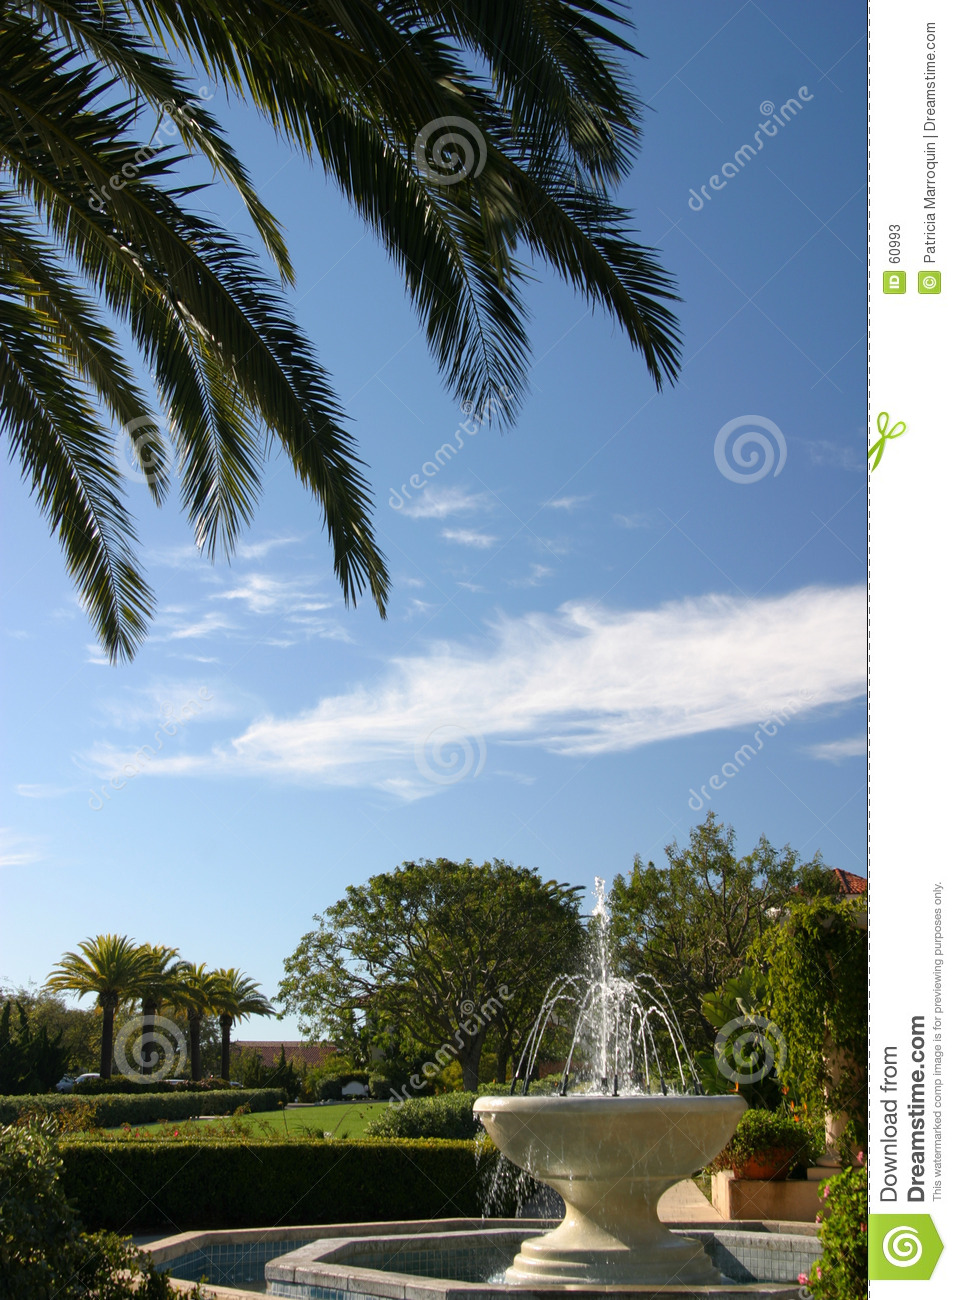 Download Paumes et fontaine image stock. Image du california, mission - 60993